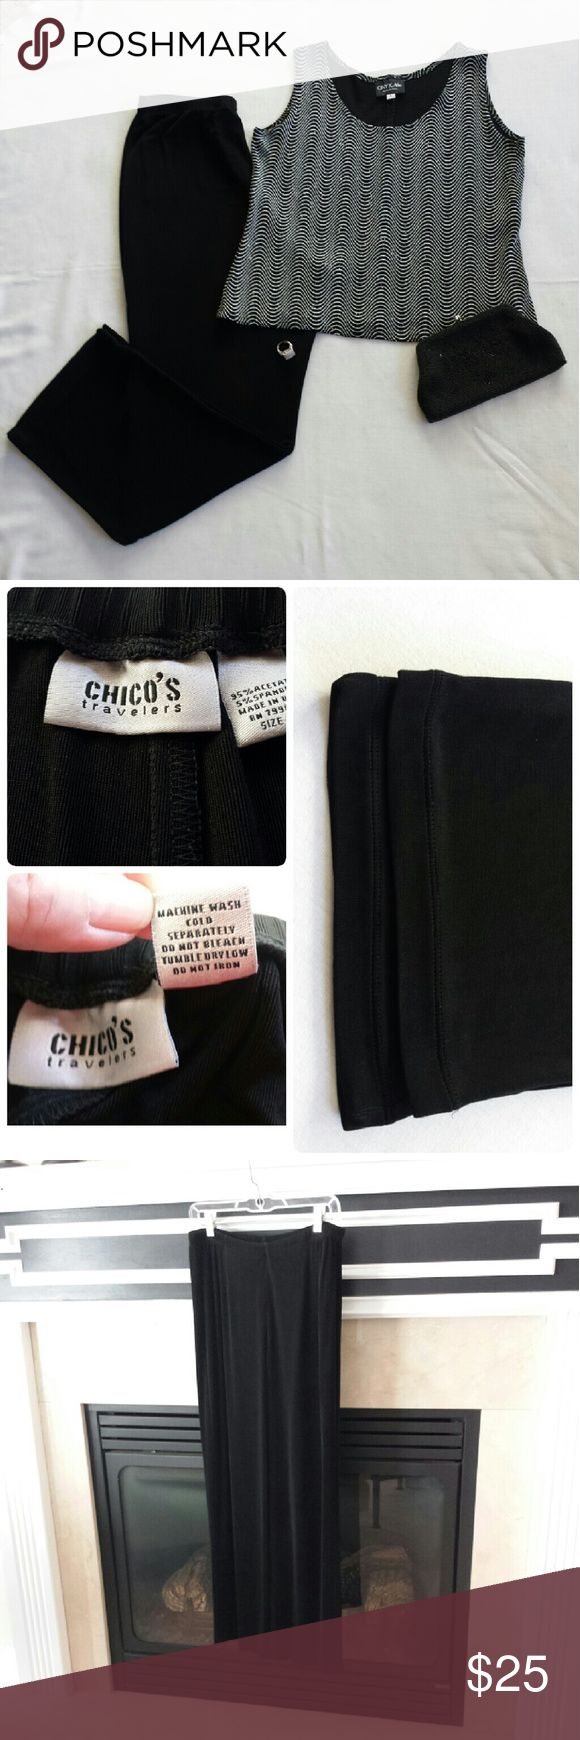 """Chico's Dressy Pants  Size 2 EUC Part of Chico's Travelers Line. Extremely comfortable, easy to wash, dress up or down. There is a shimmery effect to the material, and that is why I consider them dressy. The waist measures 14"""" W, but stretches another 8 to 10 """". 26"""" inseam, 12"""" rise. Smoke free and fragrance free home. Reasonable offers,  only, please. Chico's Pants Boot Cut & Flare"""